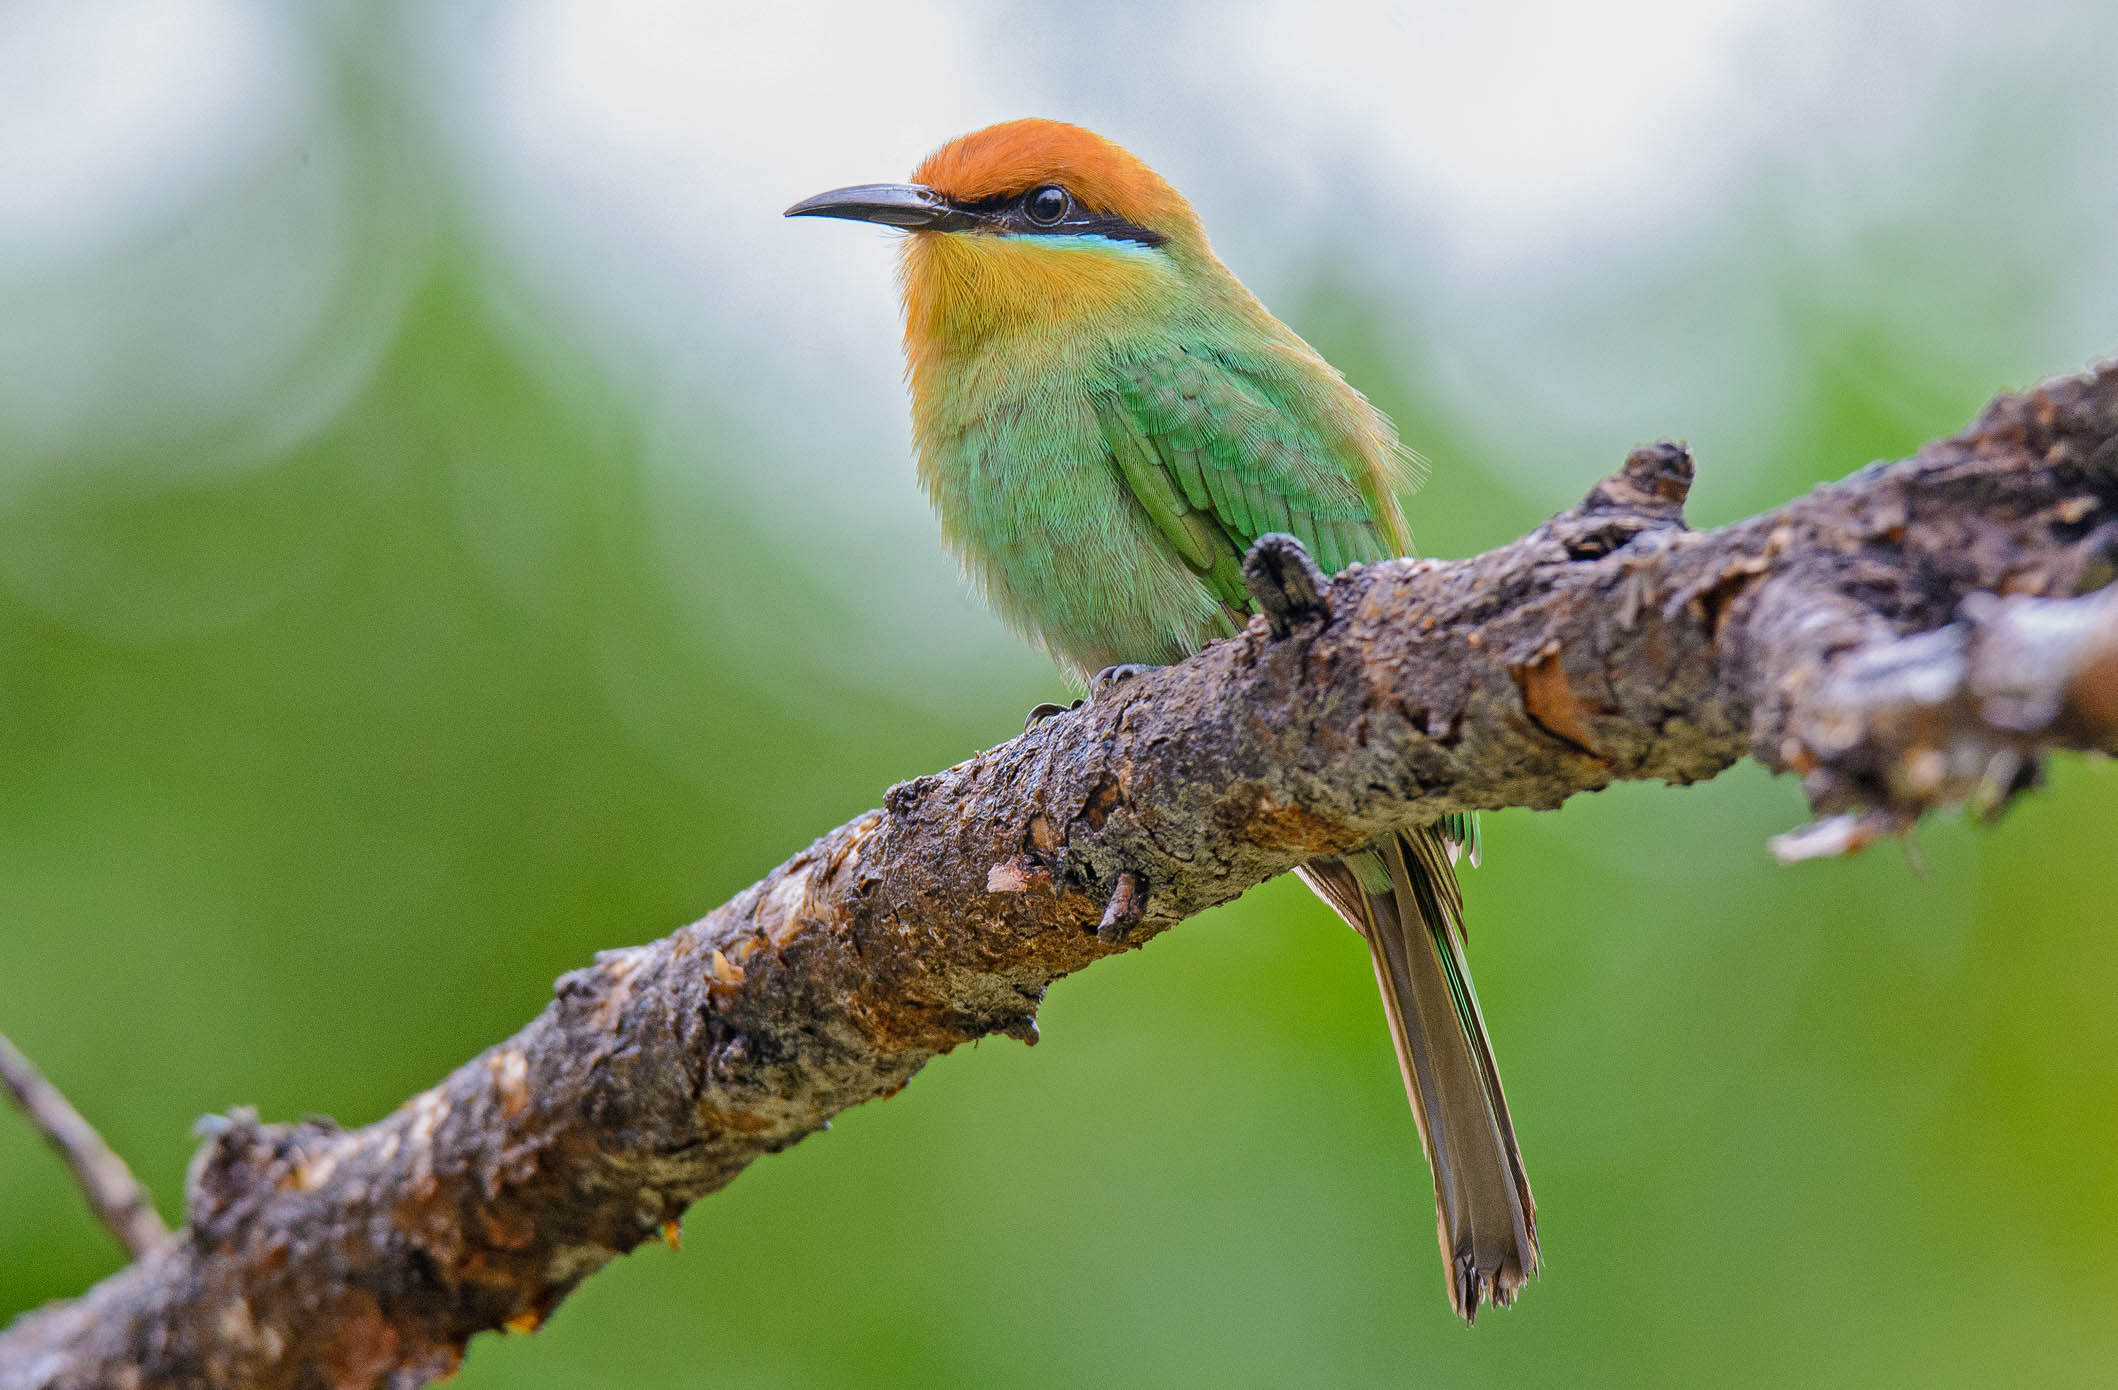 Birding Tour Malawi: 15-day Birding Adventure December 2020